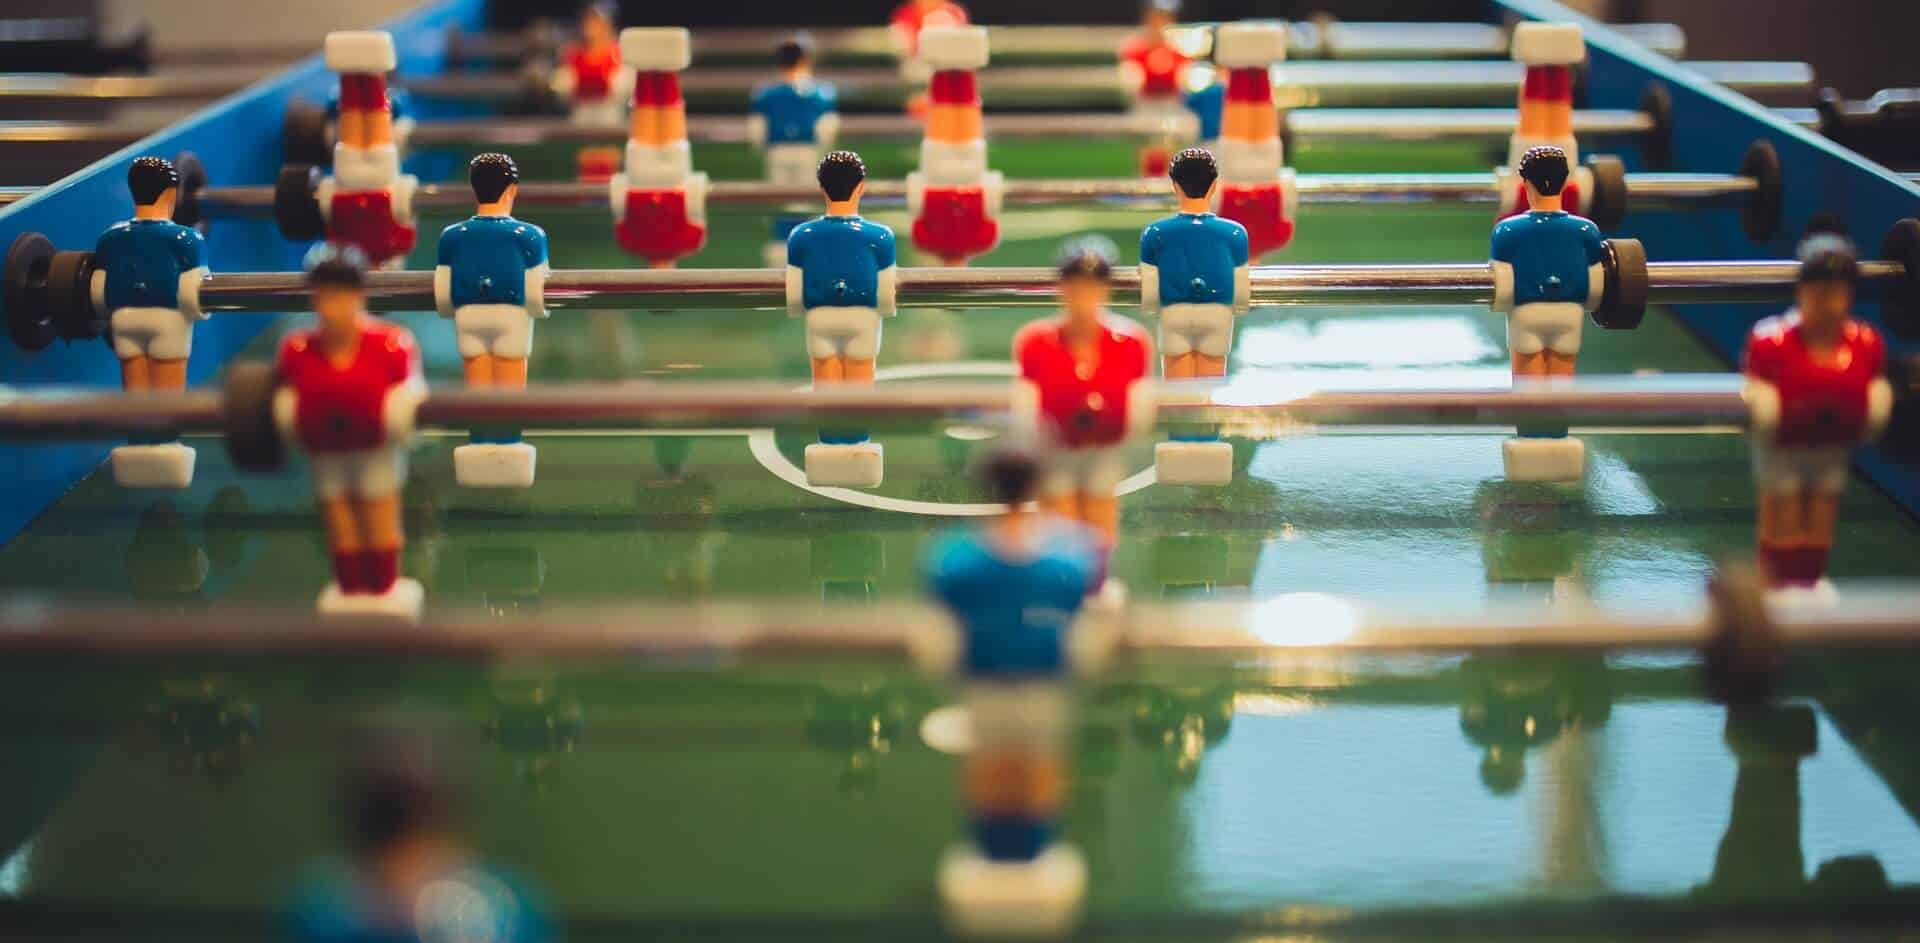 Best Foosball Table for Kids in the year 2021